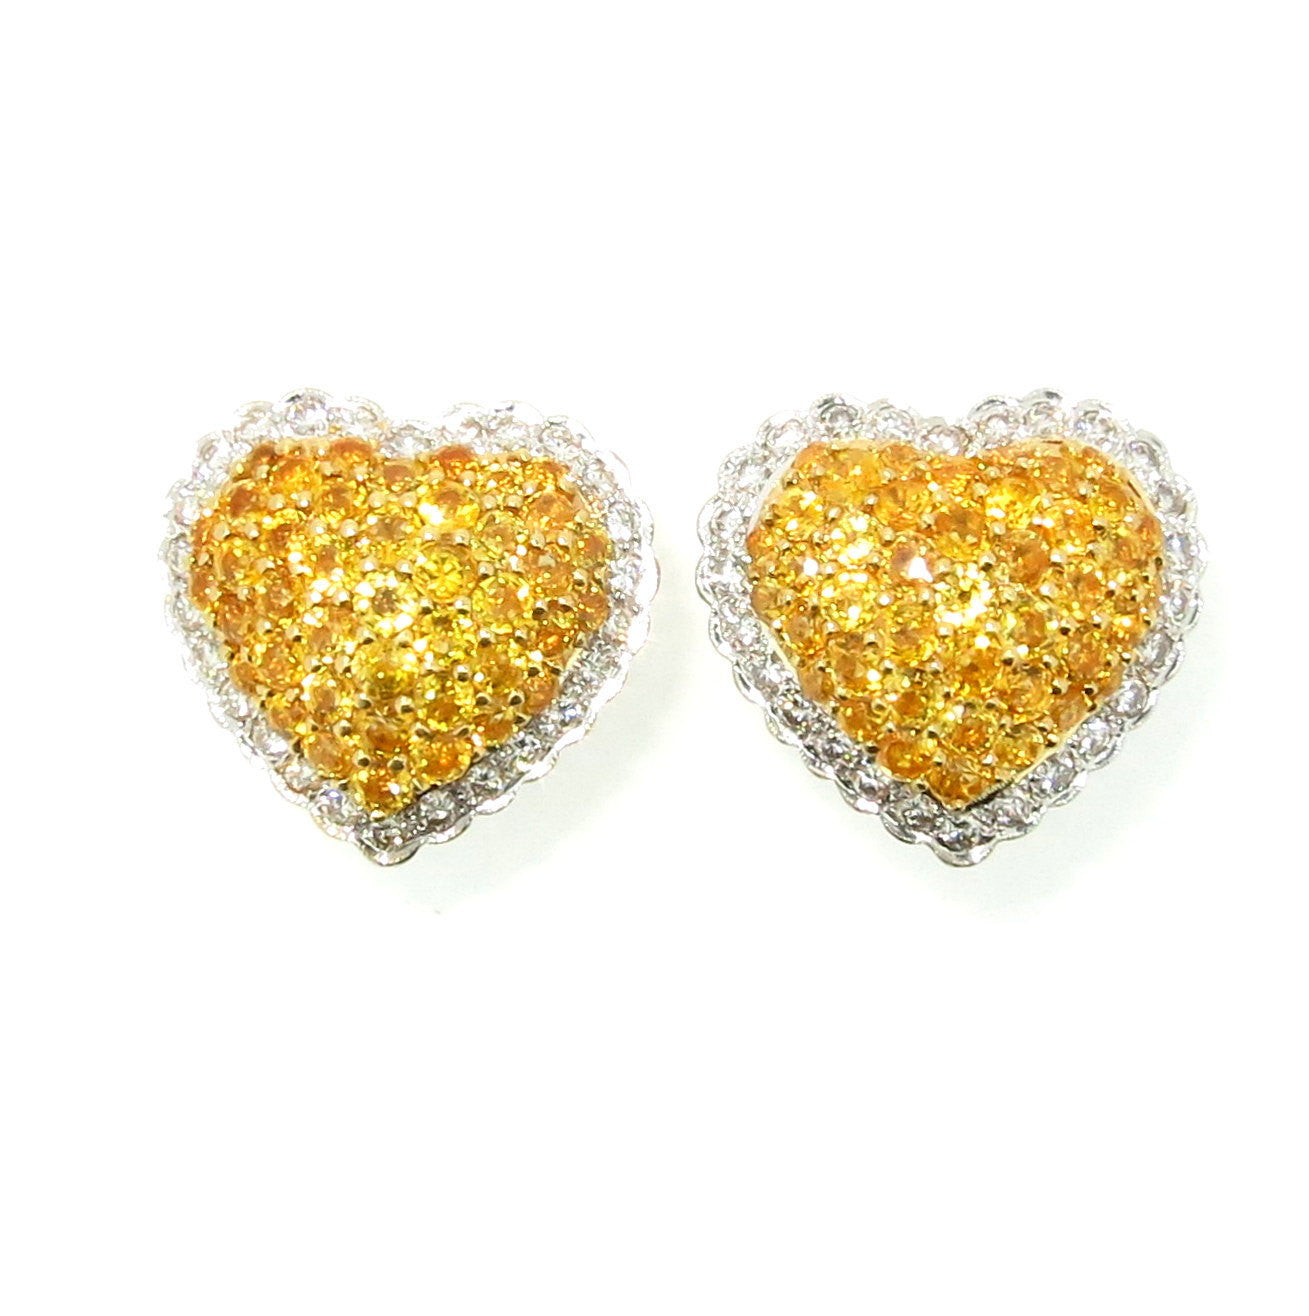 "Yellow Sapphire Gemstone & Diamond ""Heart"" Earrings"